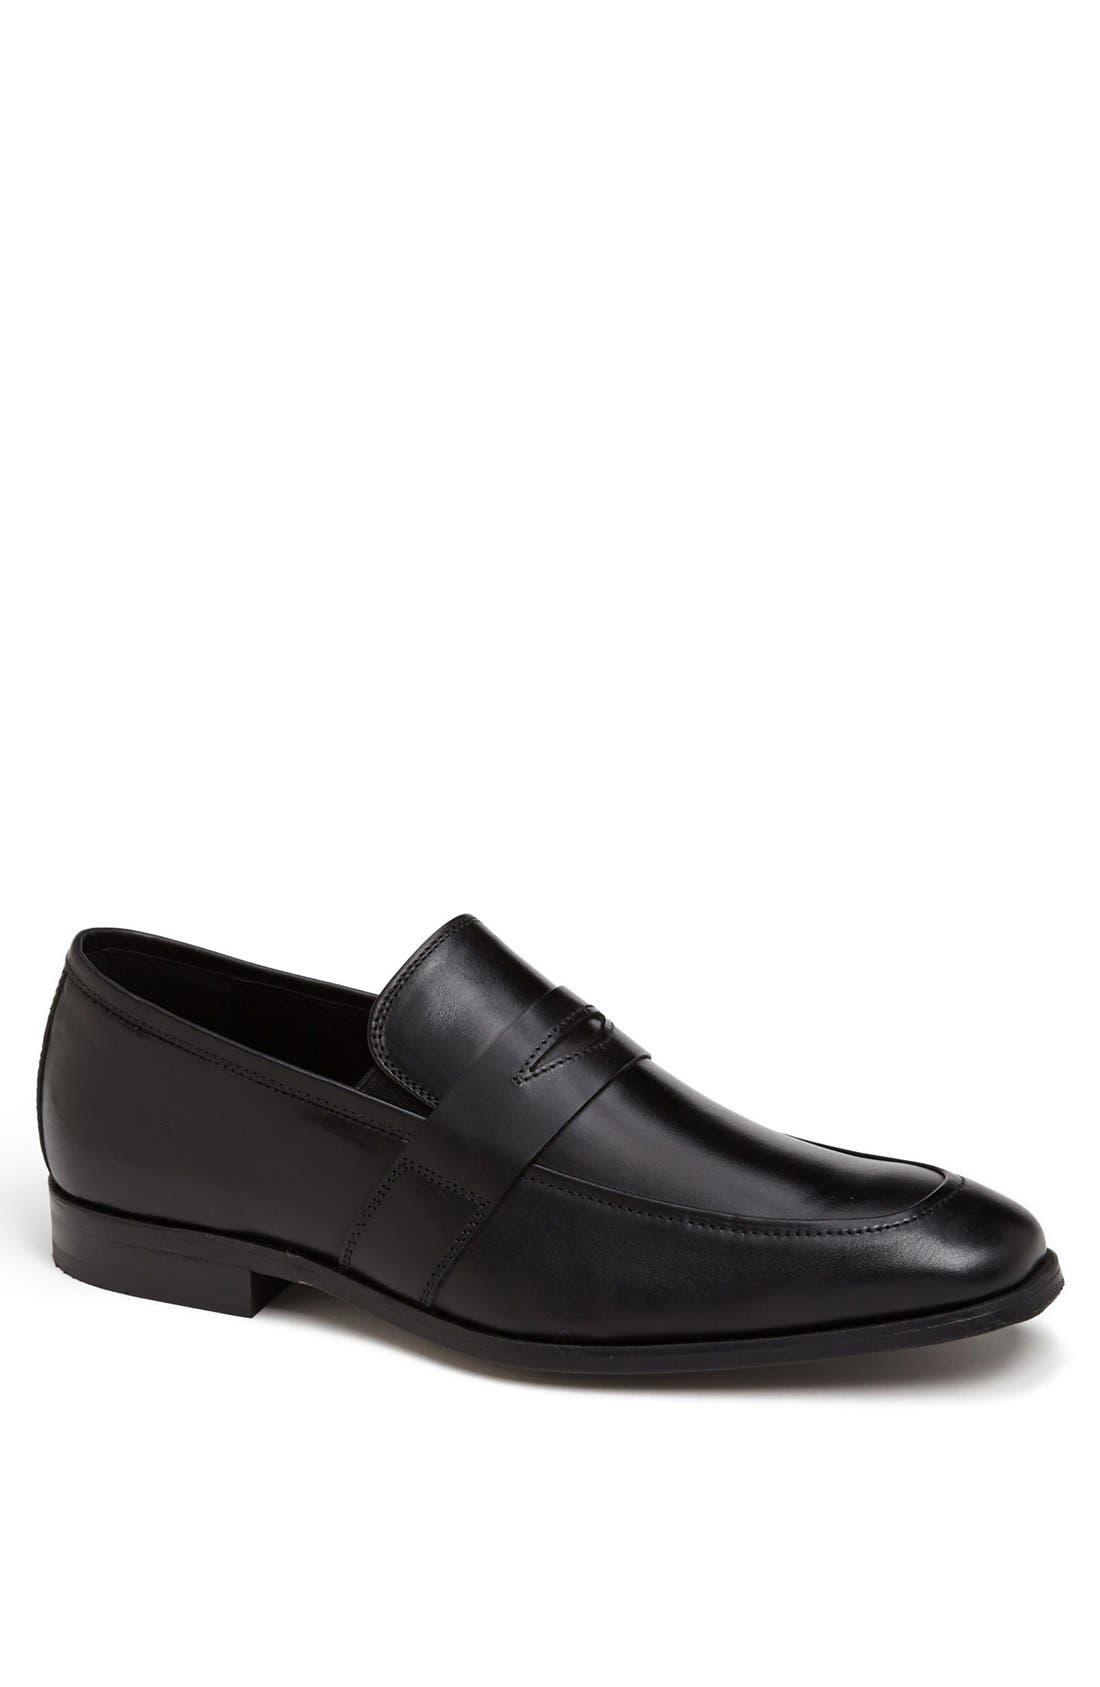 Florsheim Jet Penny Loafers Men's Shoes